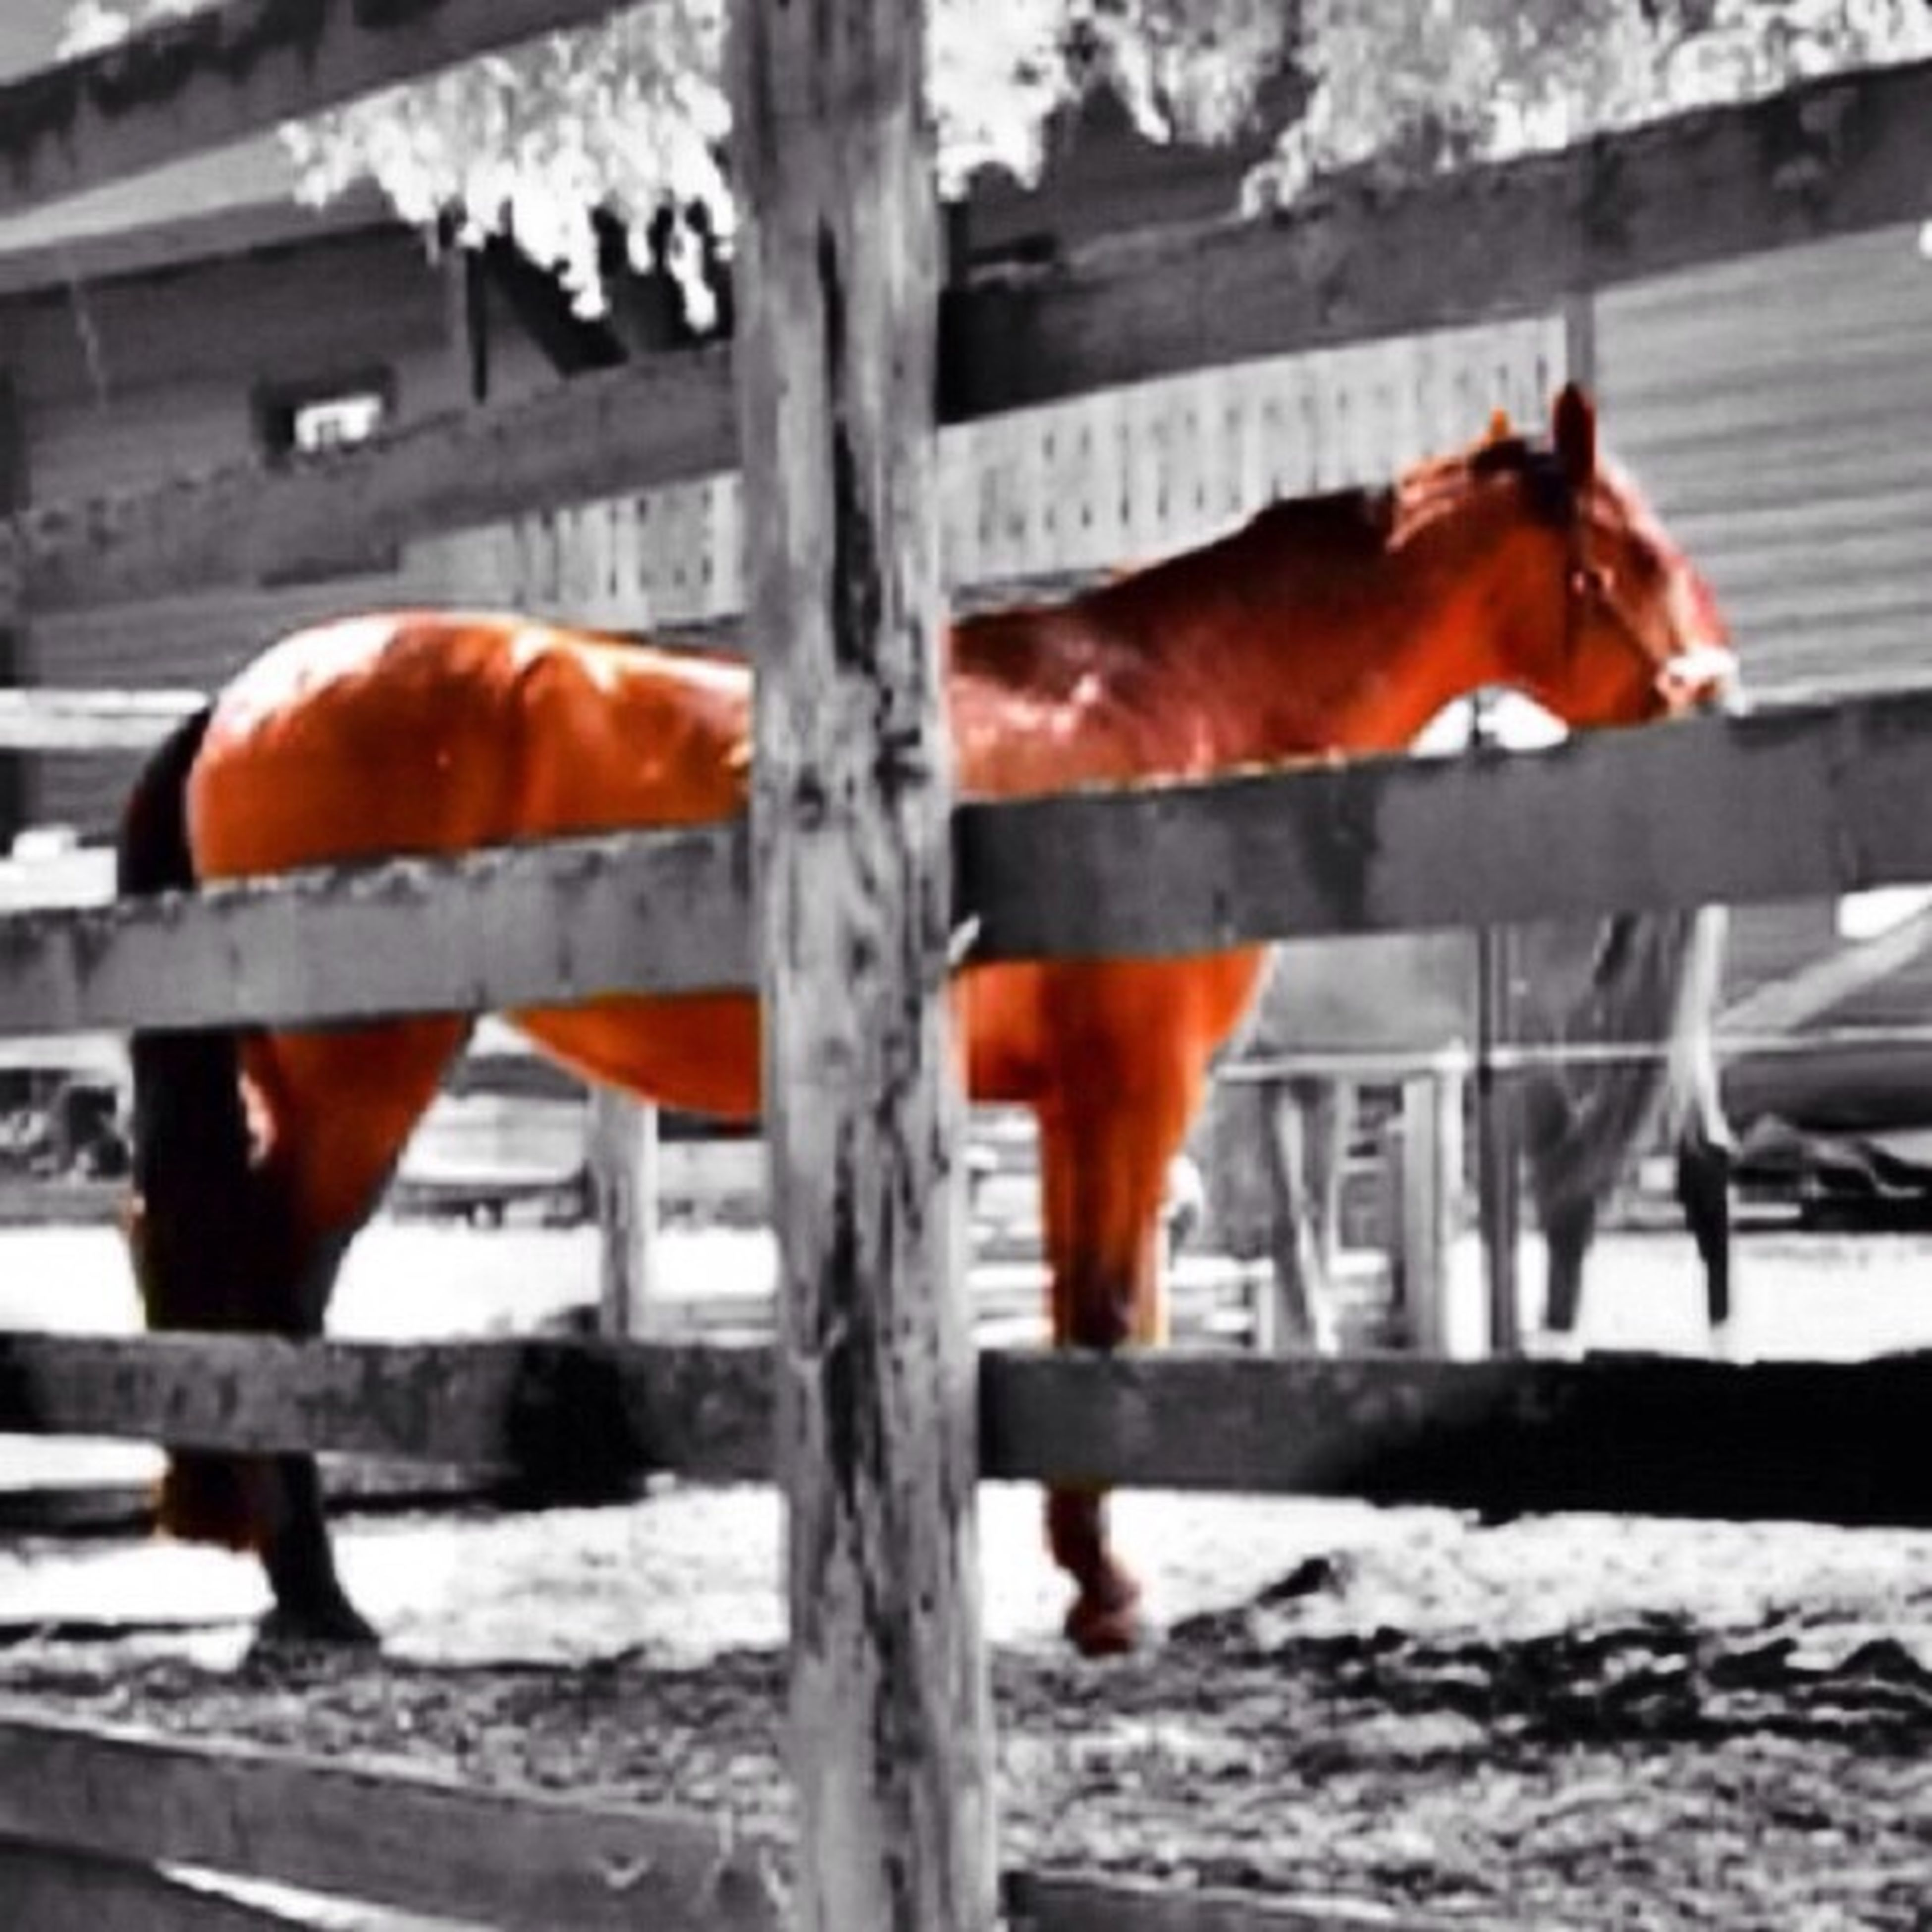 animal themes, livestock, domestic animals, mammal, one animal, fence, brown, two animals, focus on foreground, animals in captivity, zoology, standing, herbivorous, railing, animals in the wild, orange color, horse, side view, close-up, wildlife